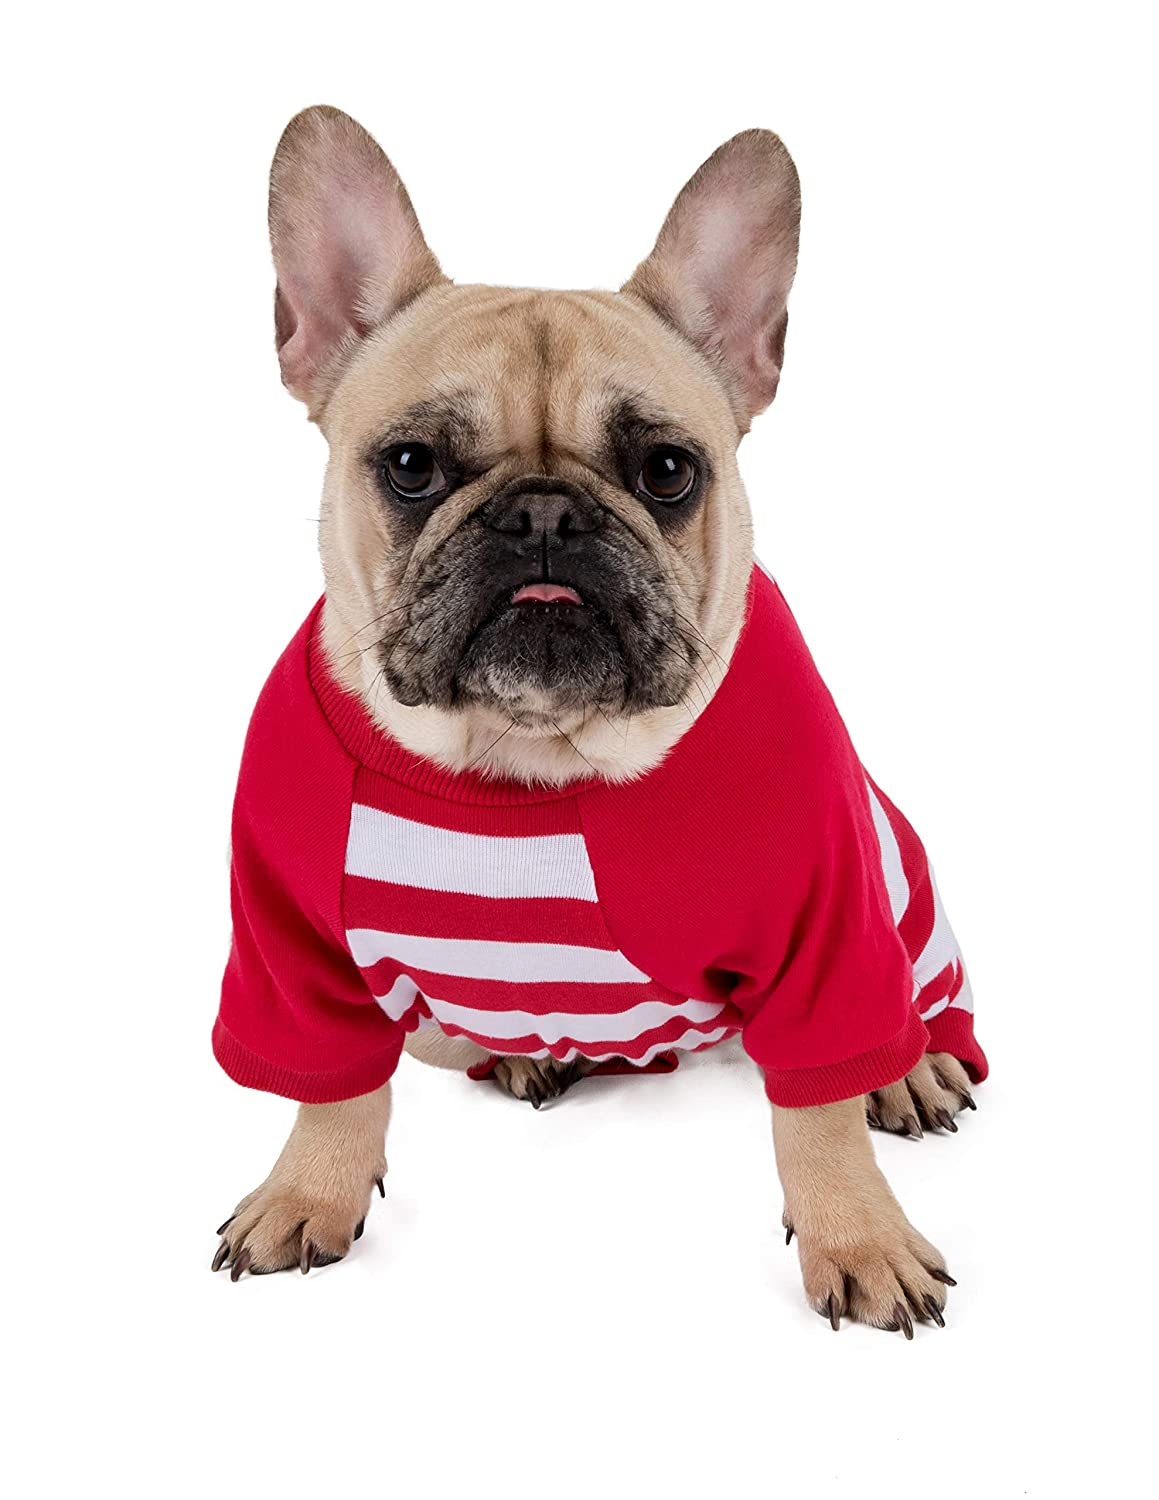 Christmas Pajamas For Dogs.Leveret Dog Pajamas Matching Christmas Pjs For Dogs 100 Cotton Size X Small Xx Large